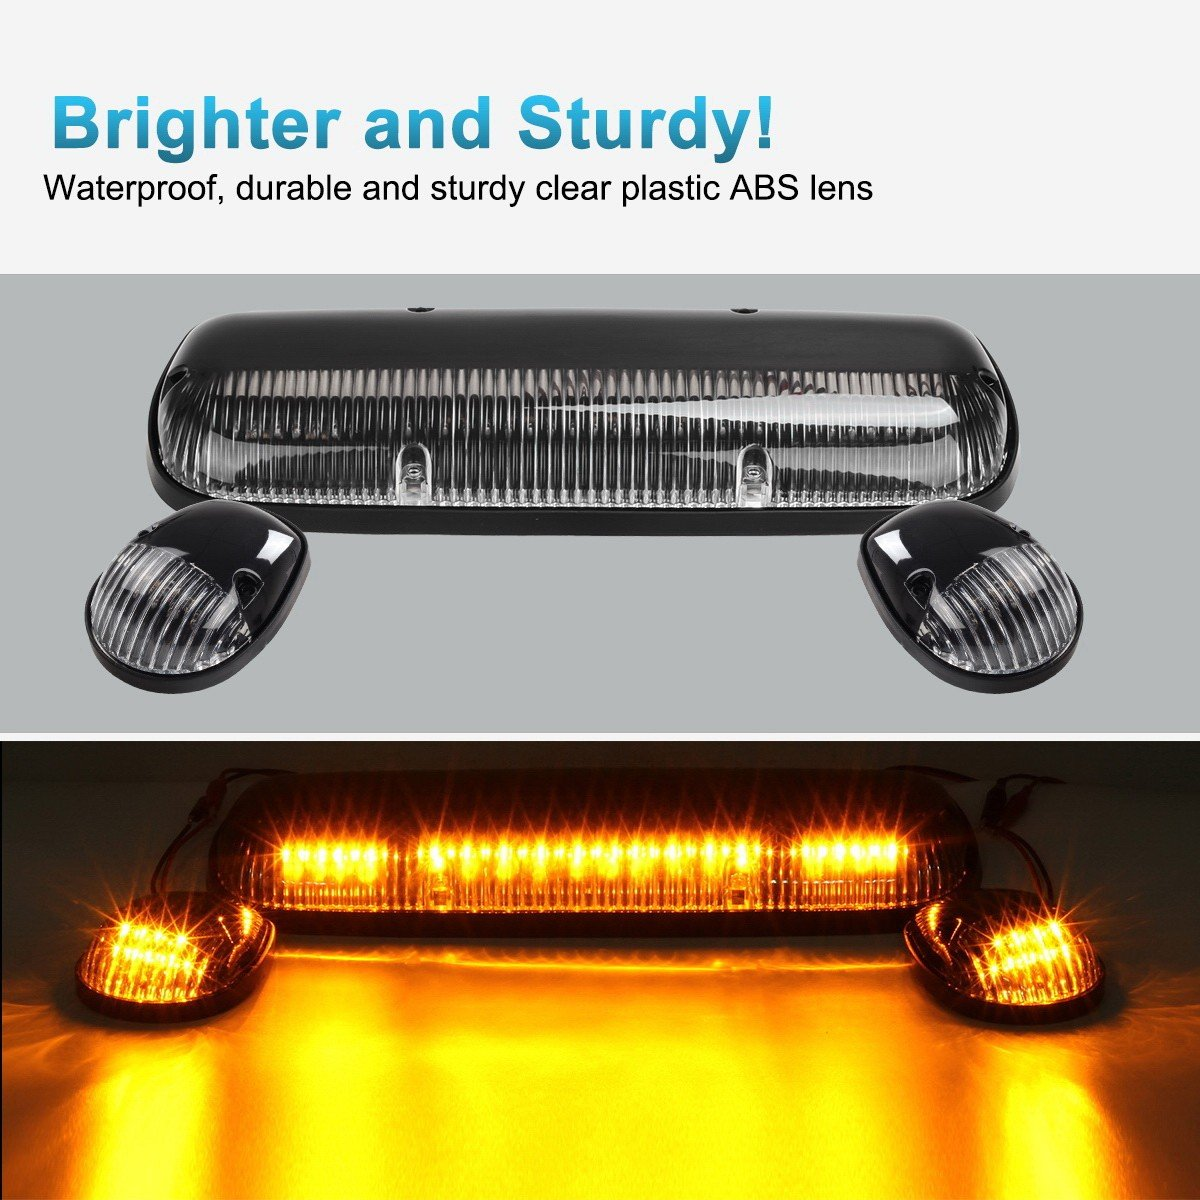 Partsam 3PCS Clear Cover Amber 30 LED Cab Roof Top Marker Lights Replacement for 2002 2003 2004 2005 2006 2007 Chevrolet Silverado GMC Sierra 1500 1500HD 2500 2500HD 3500 Pickup Trucks